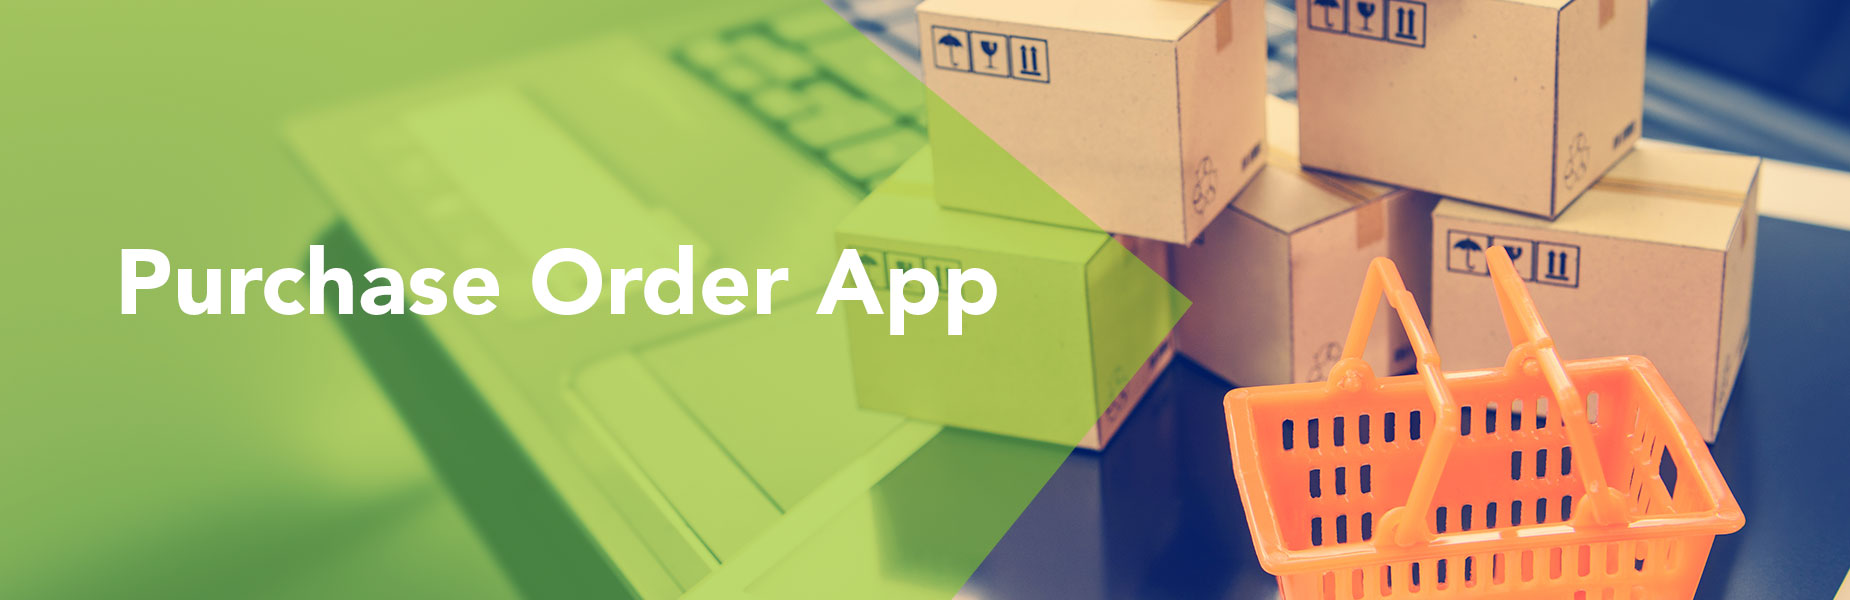 Purchase Order App KOAMTACON